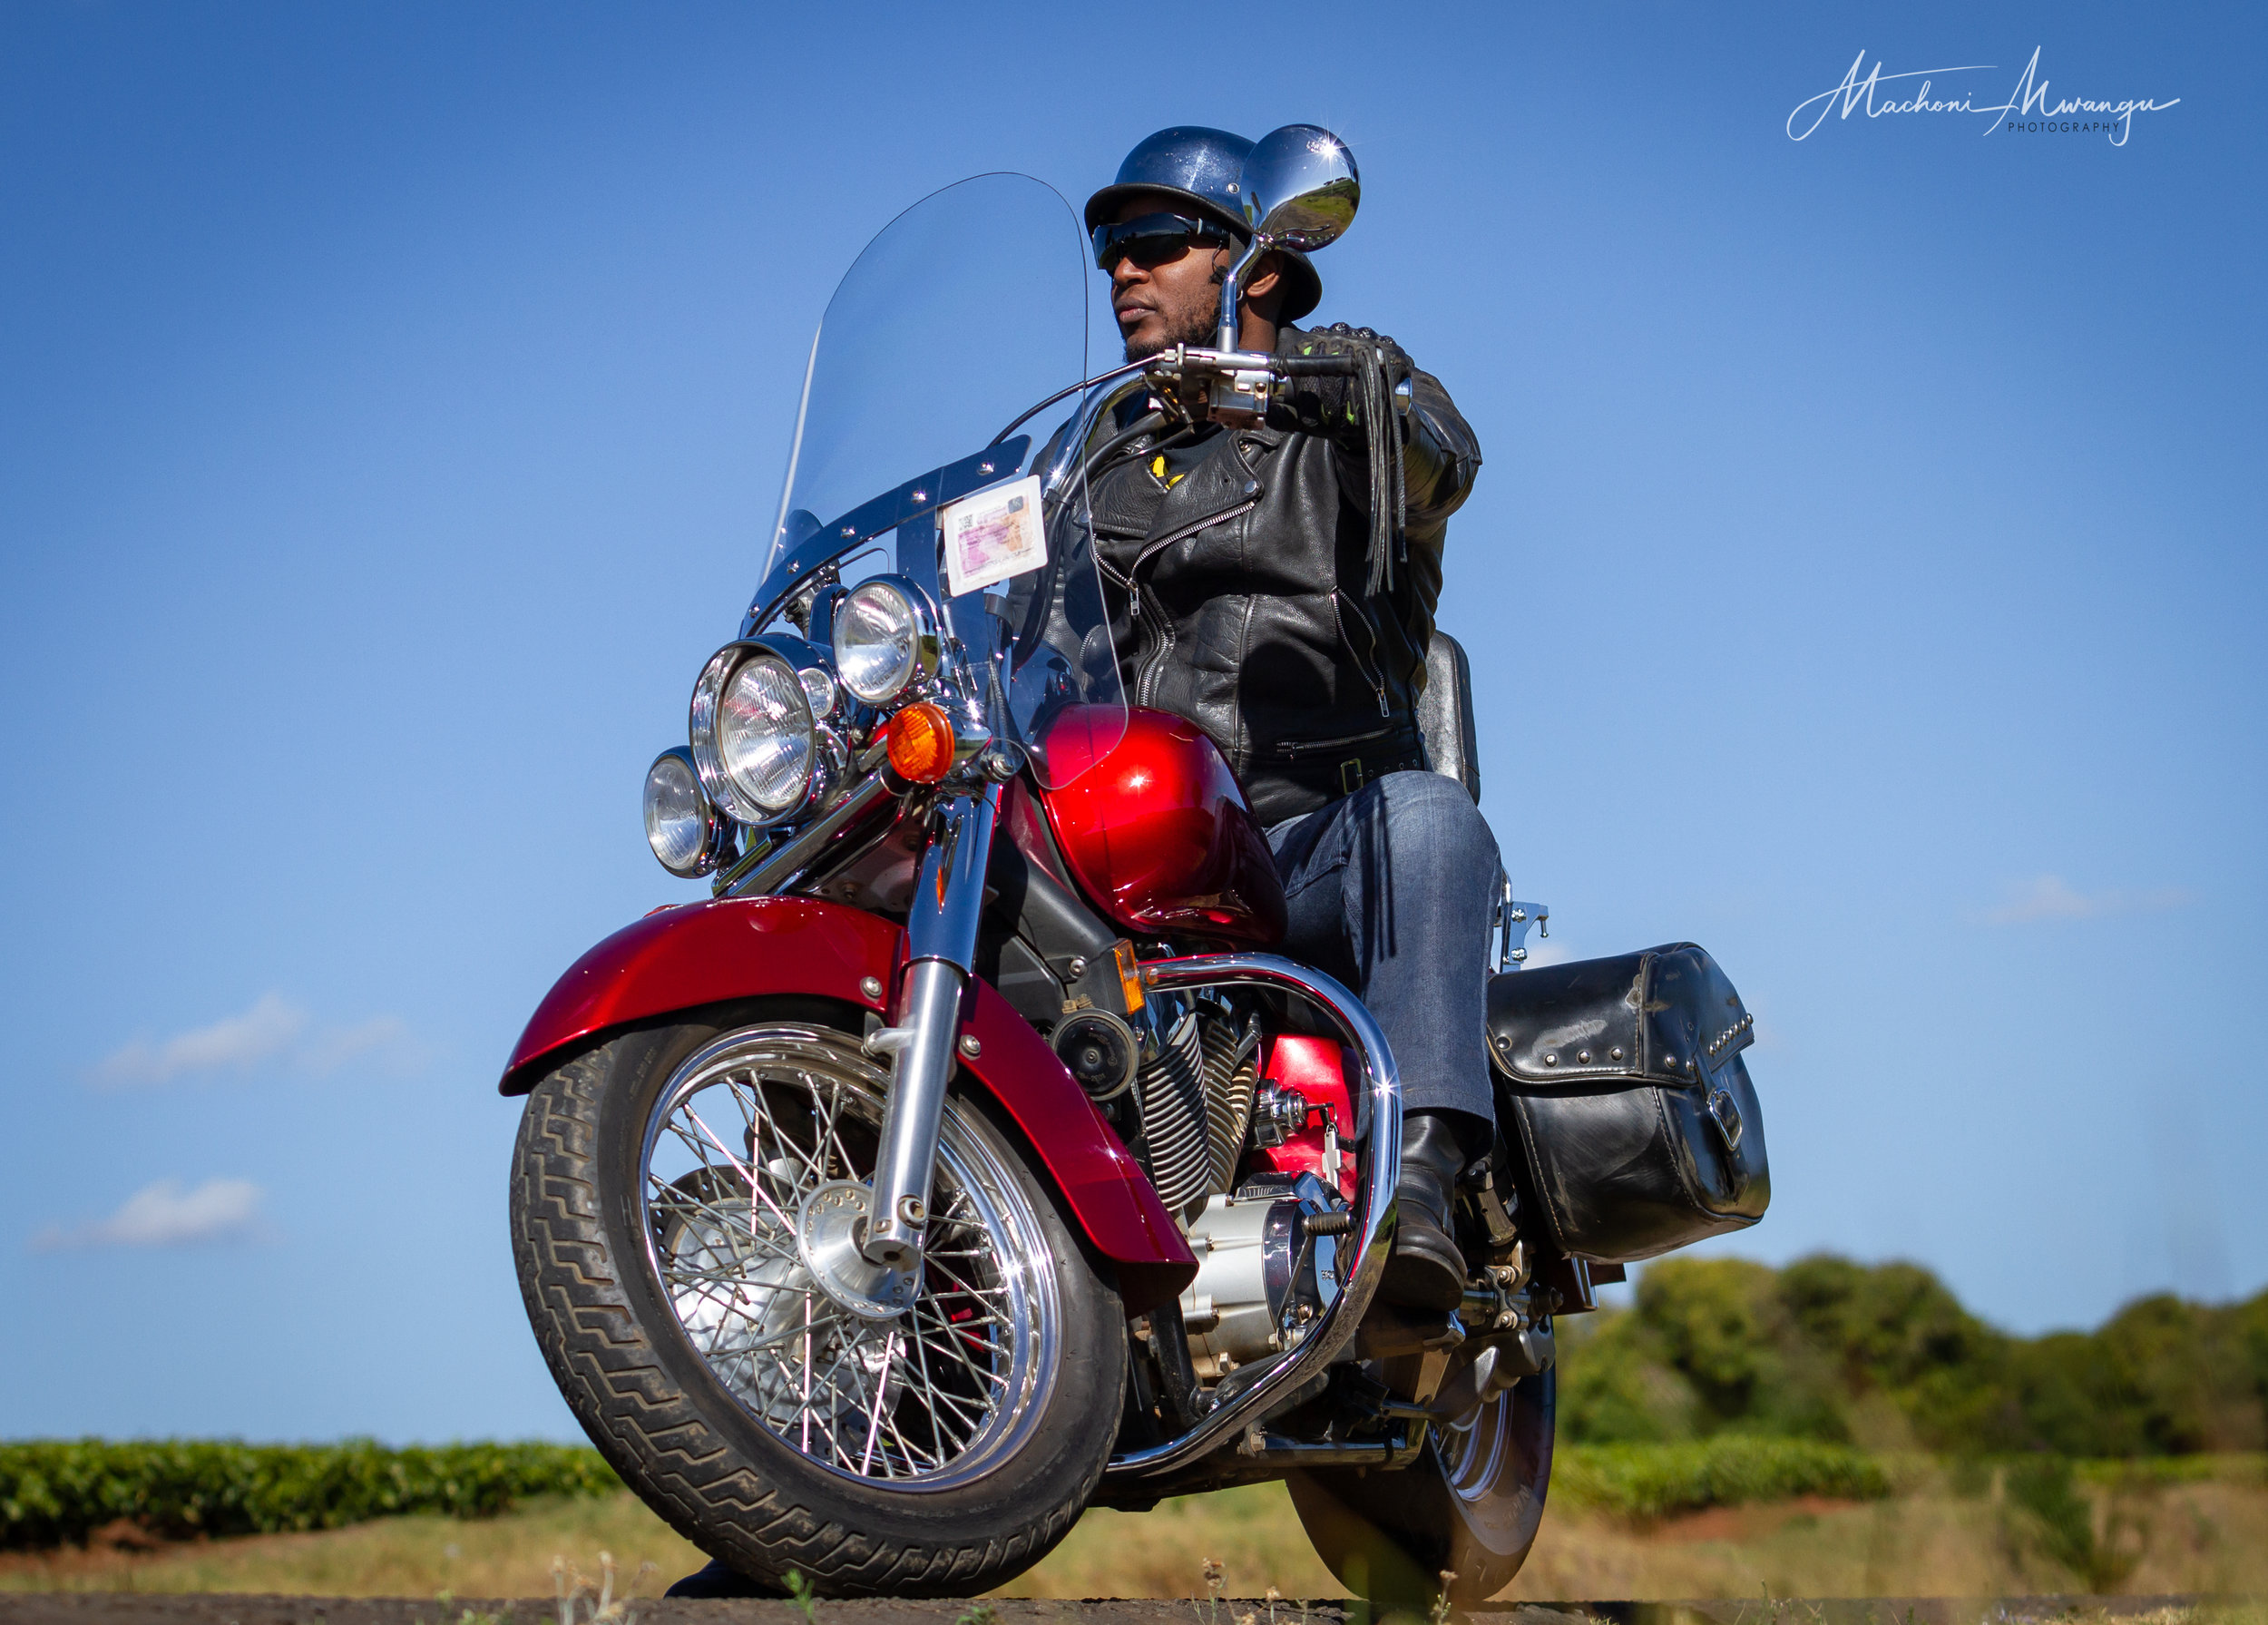 Cruiser Rider- Honda Shadow-1-19.jpg